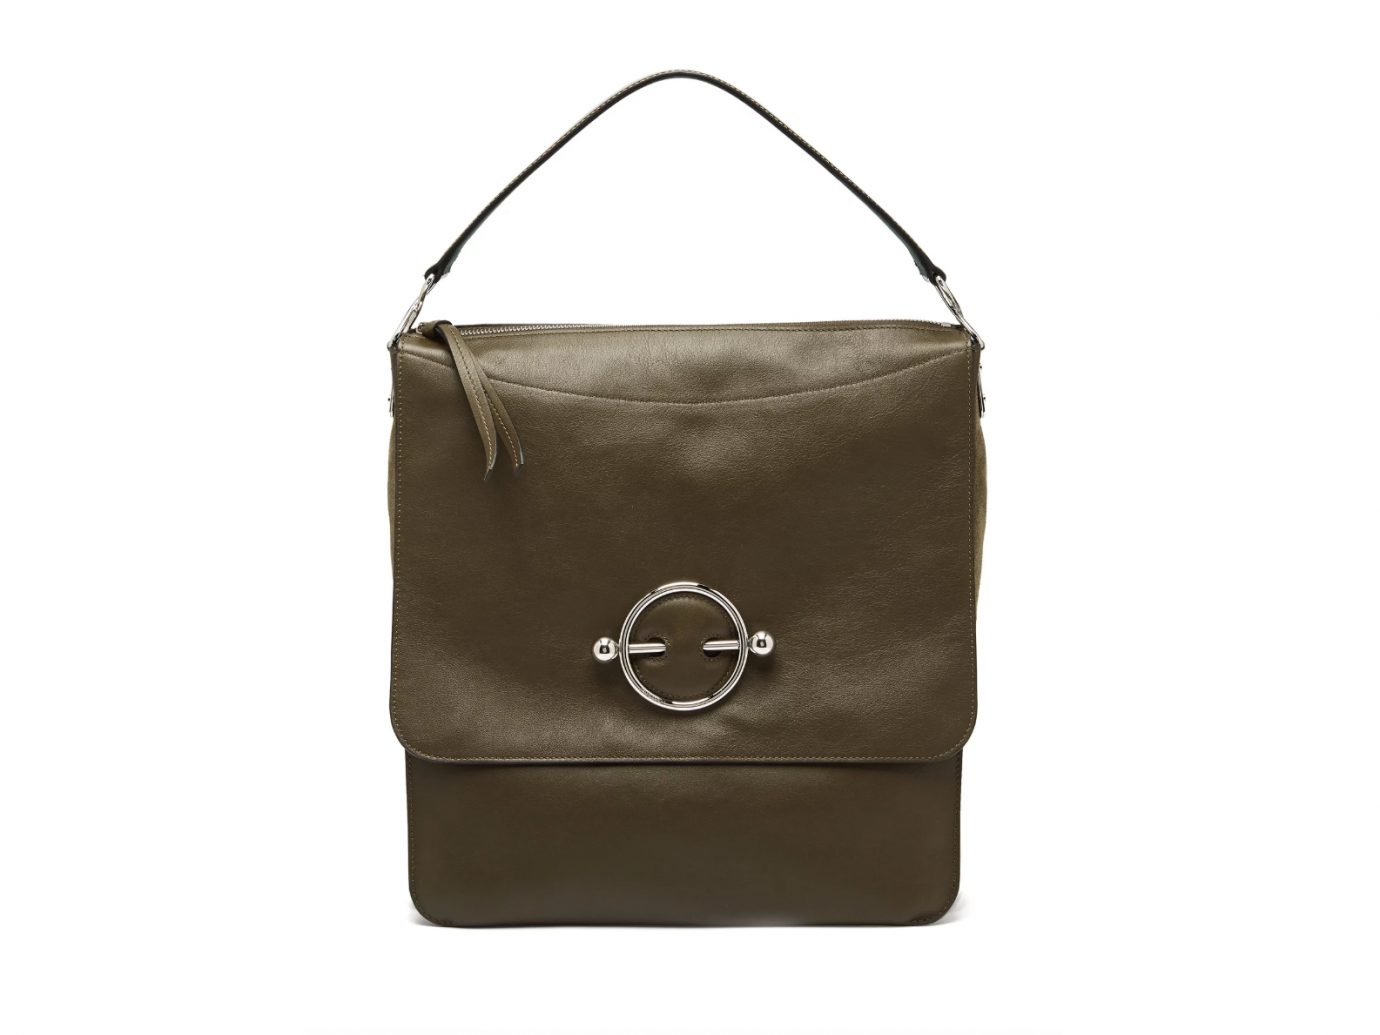 JW-Anderson Disc Leather Hobo Bag